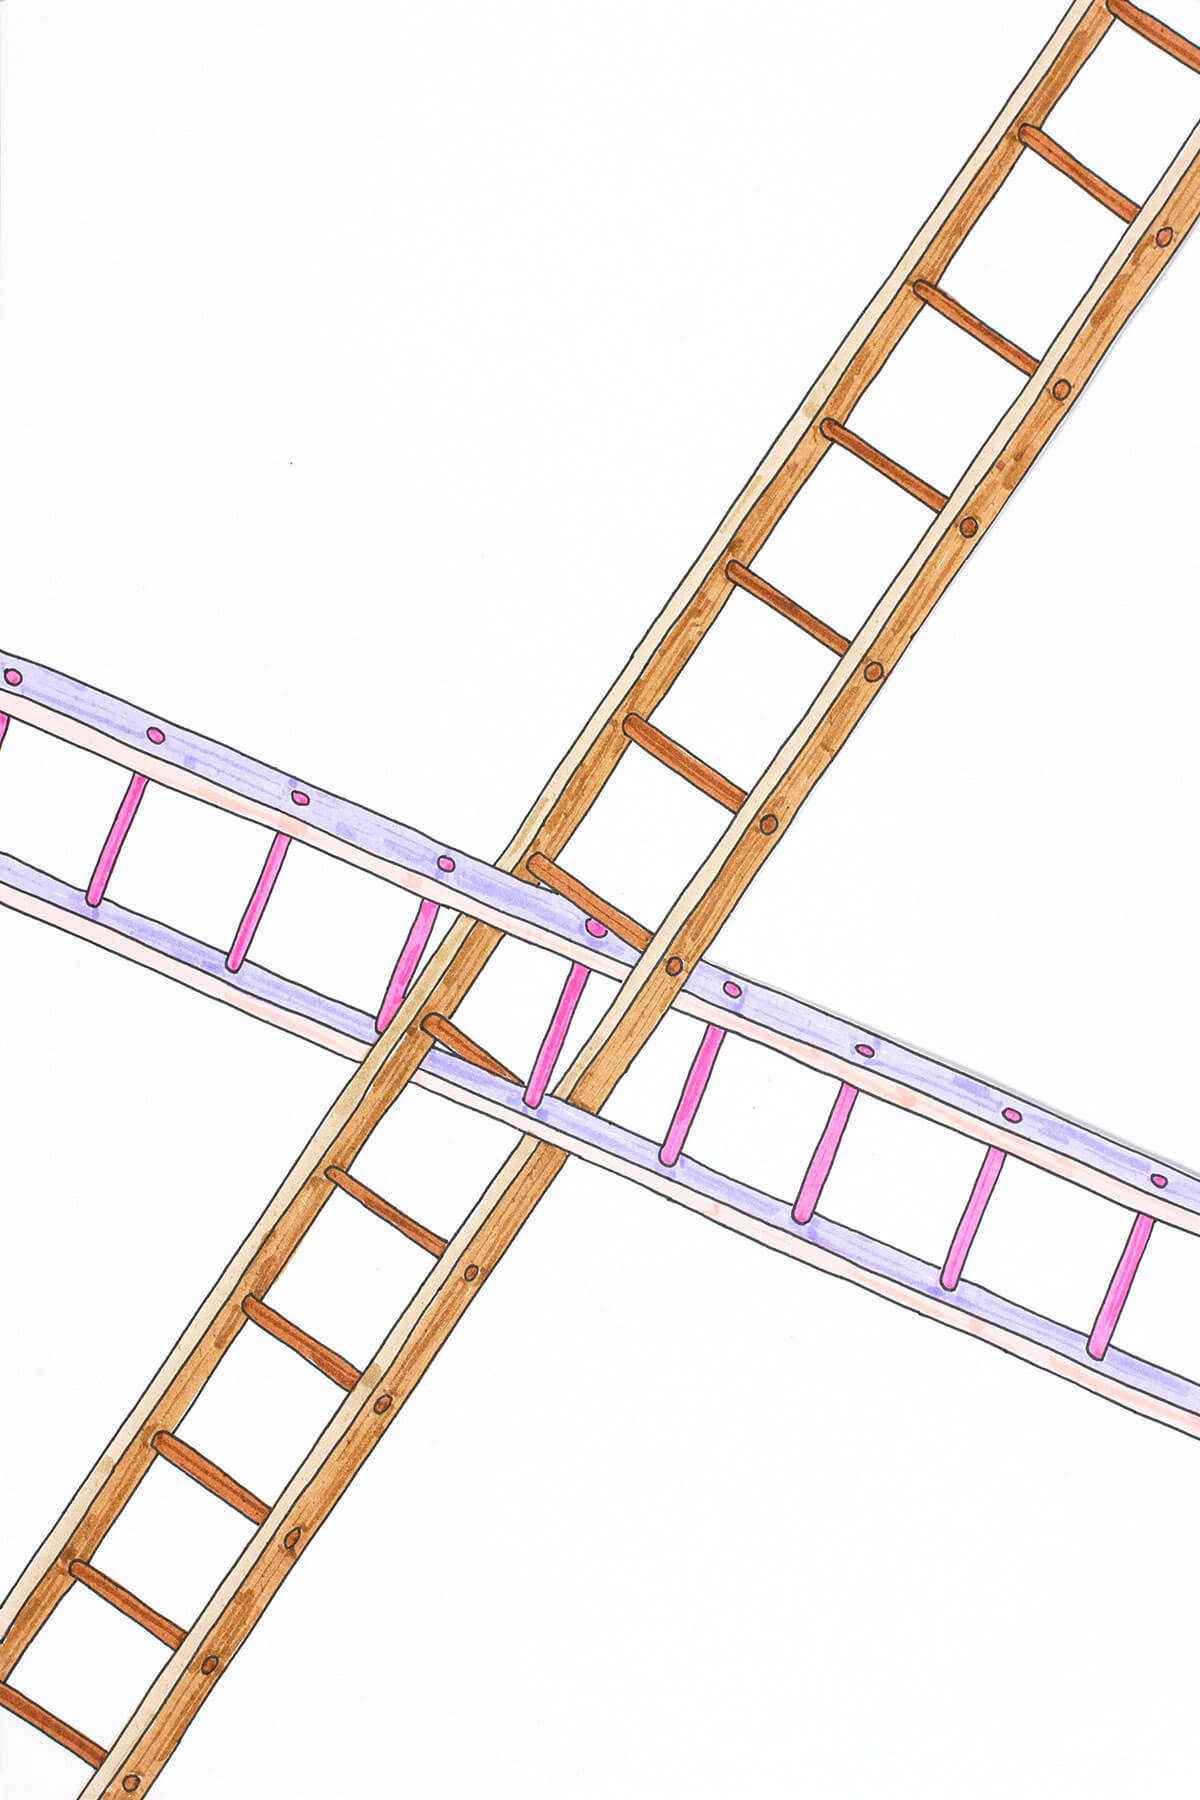 A drawing of two long ladders that intersect and have their rungs entwined in the middle. One ladder is gray/pink, the other is wood and they both extend beyond the edge of the card.